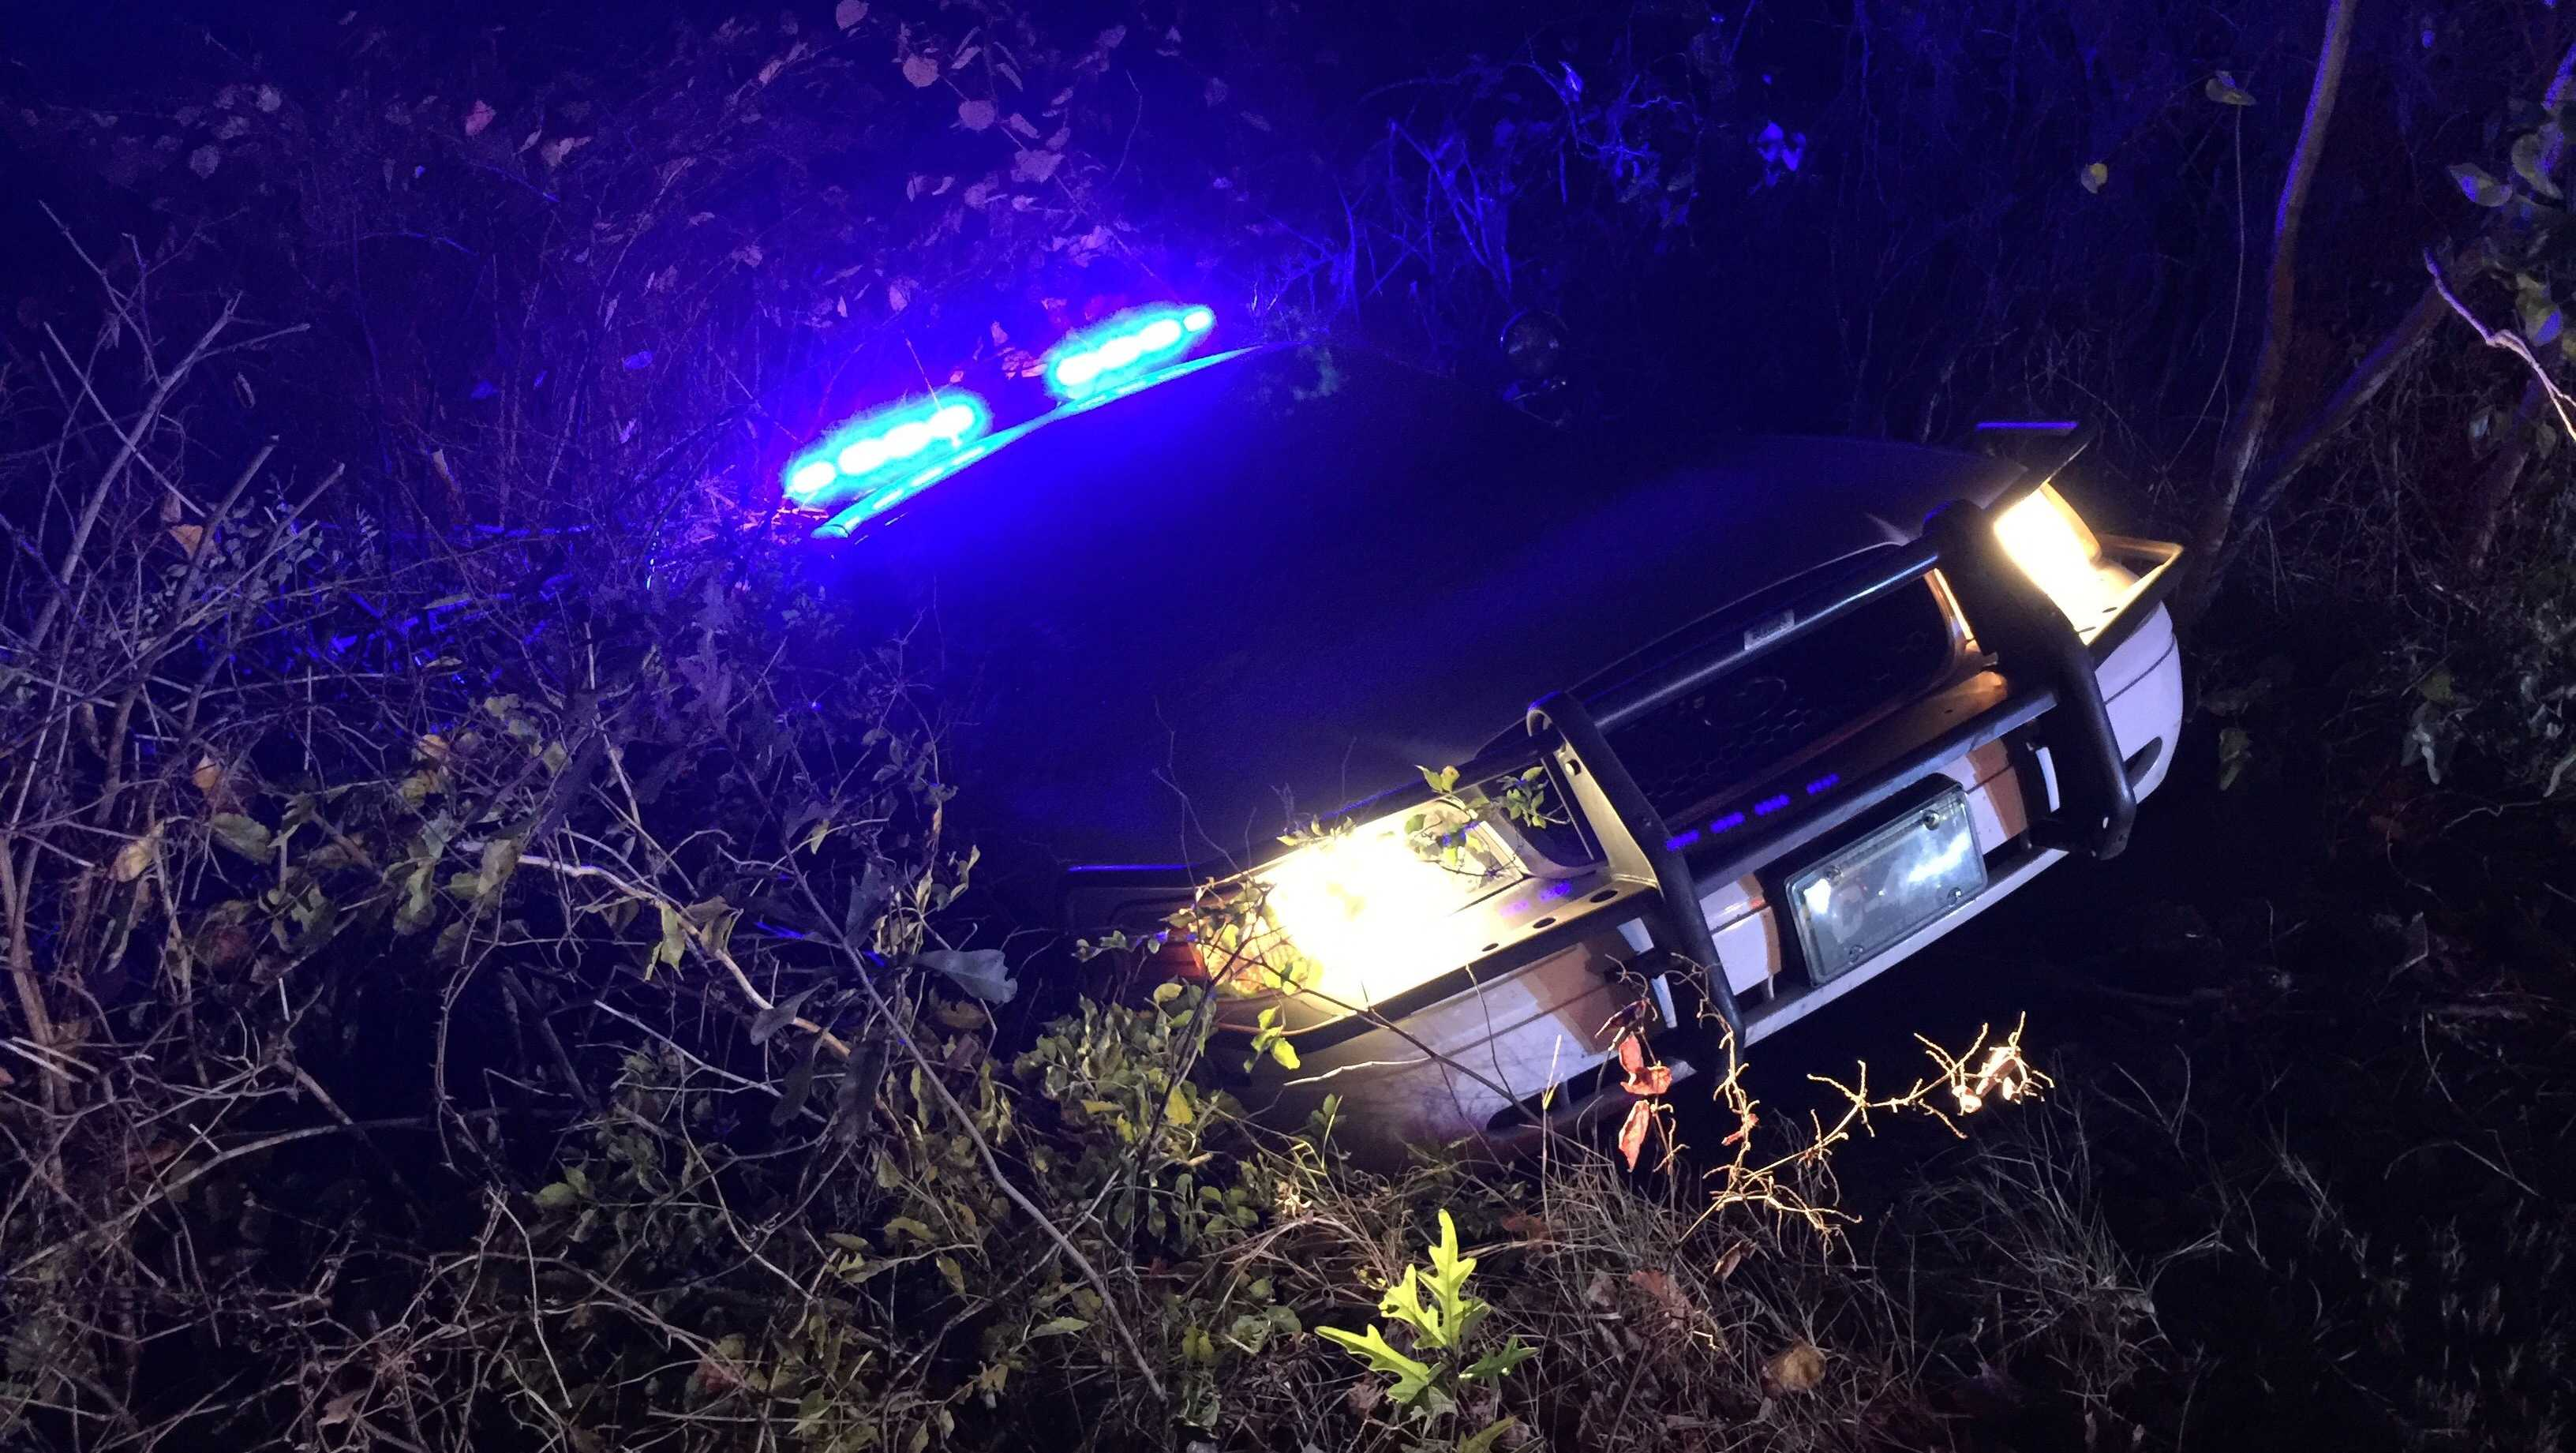 Pickens County deputy in ditch